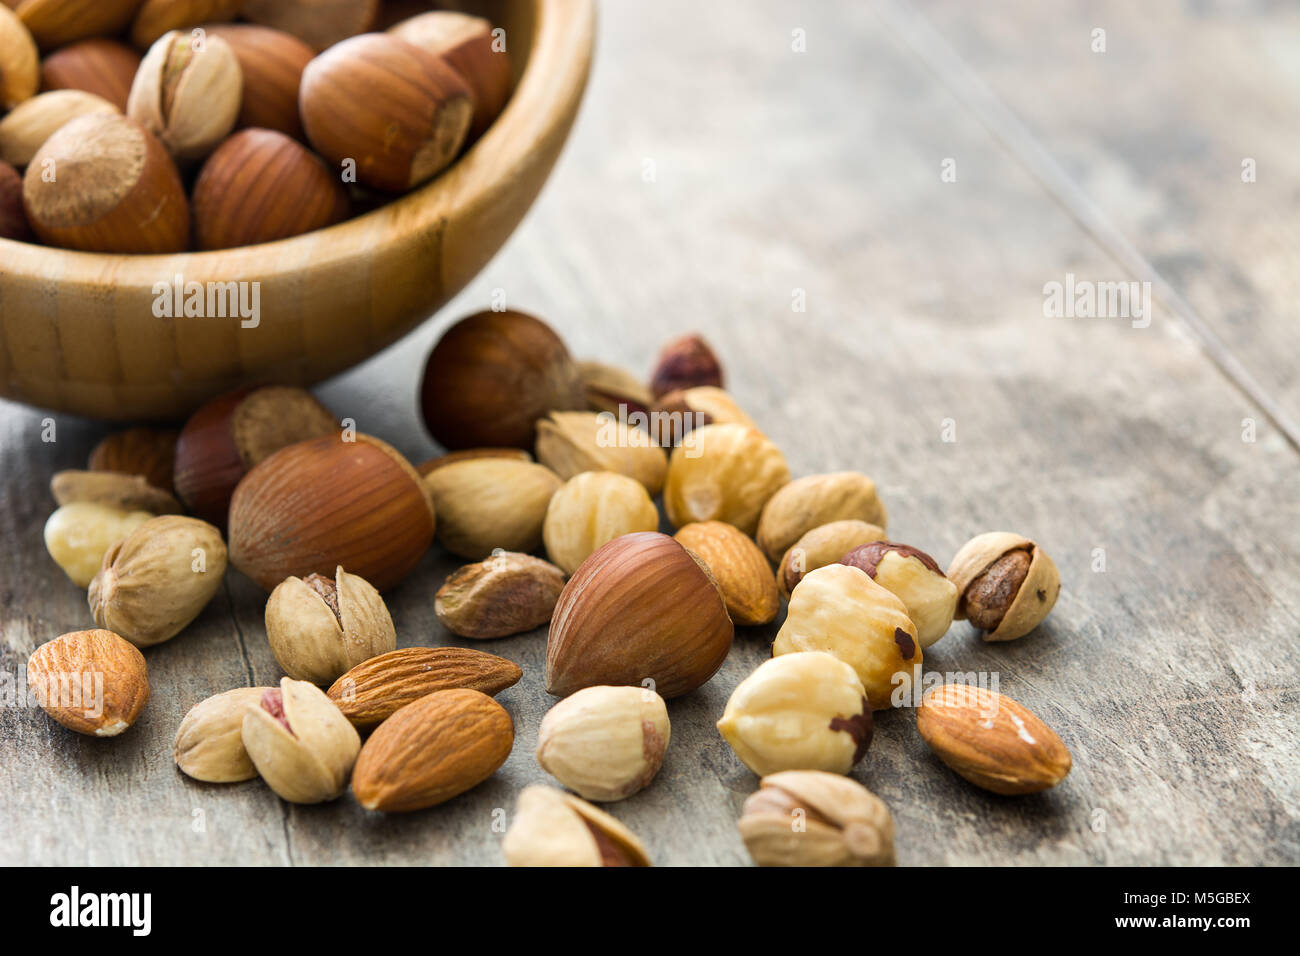 Assorted mixed nuts in bowl on wooden table - Stock Image